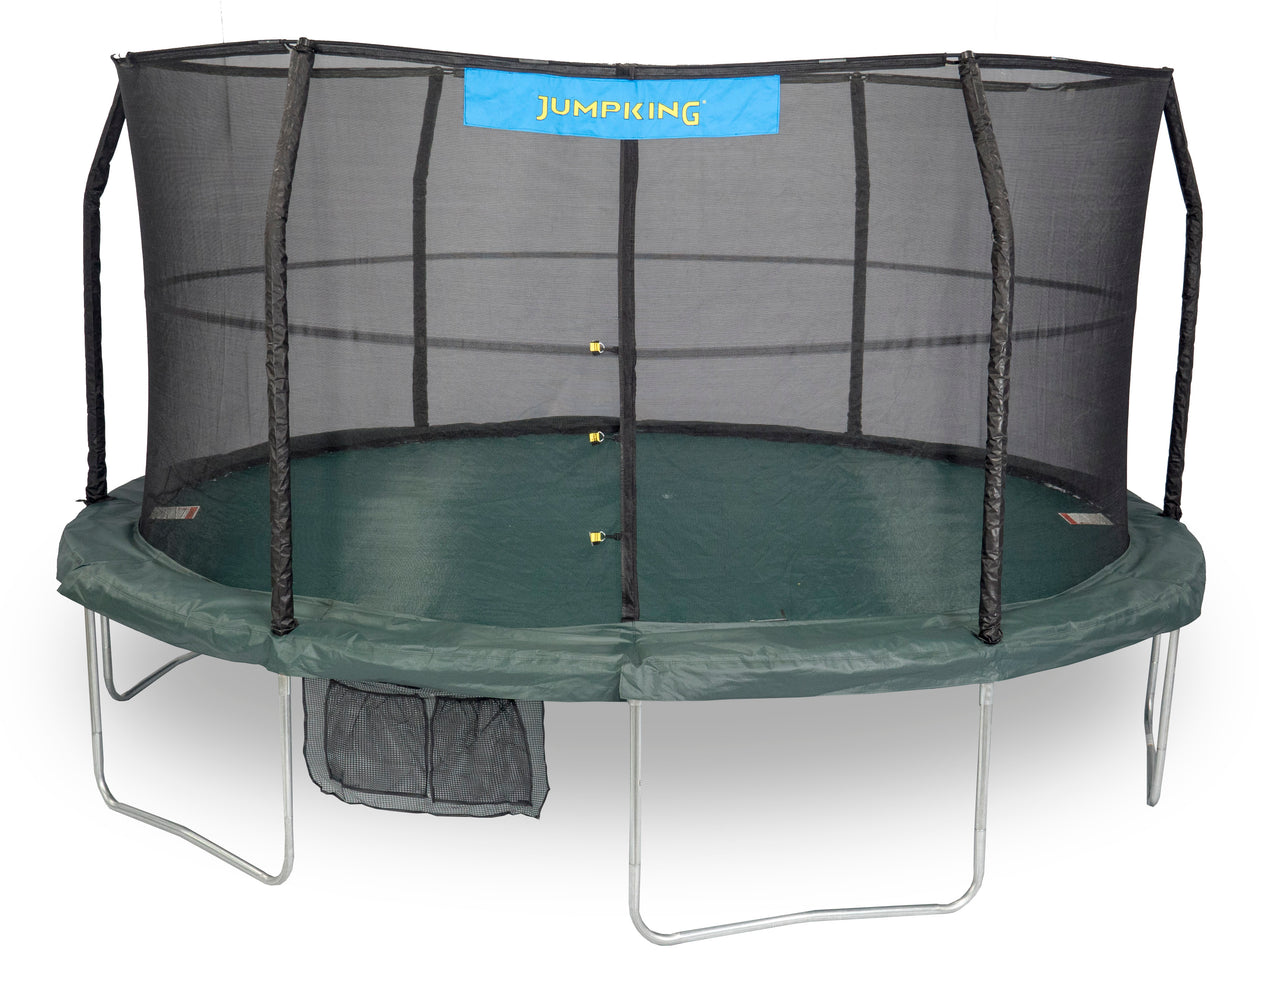 Jumpking 15' Trampoline Green, 6 Legs,6 Poles, 96 Springs  Jk1566C2